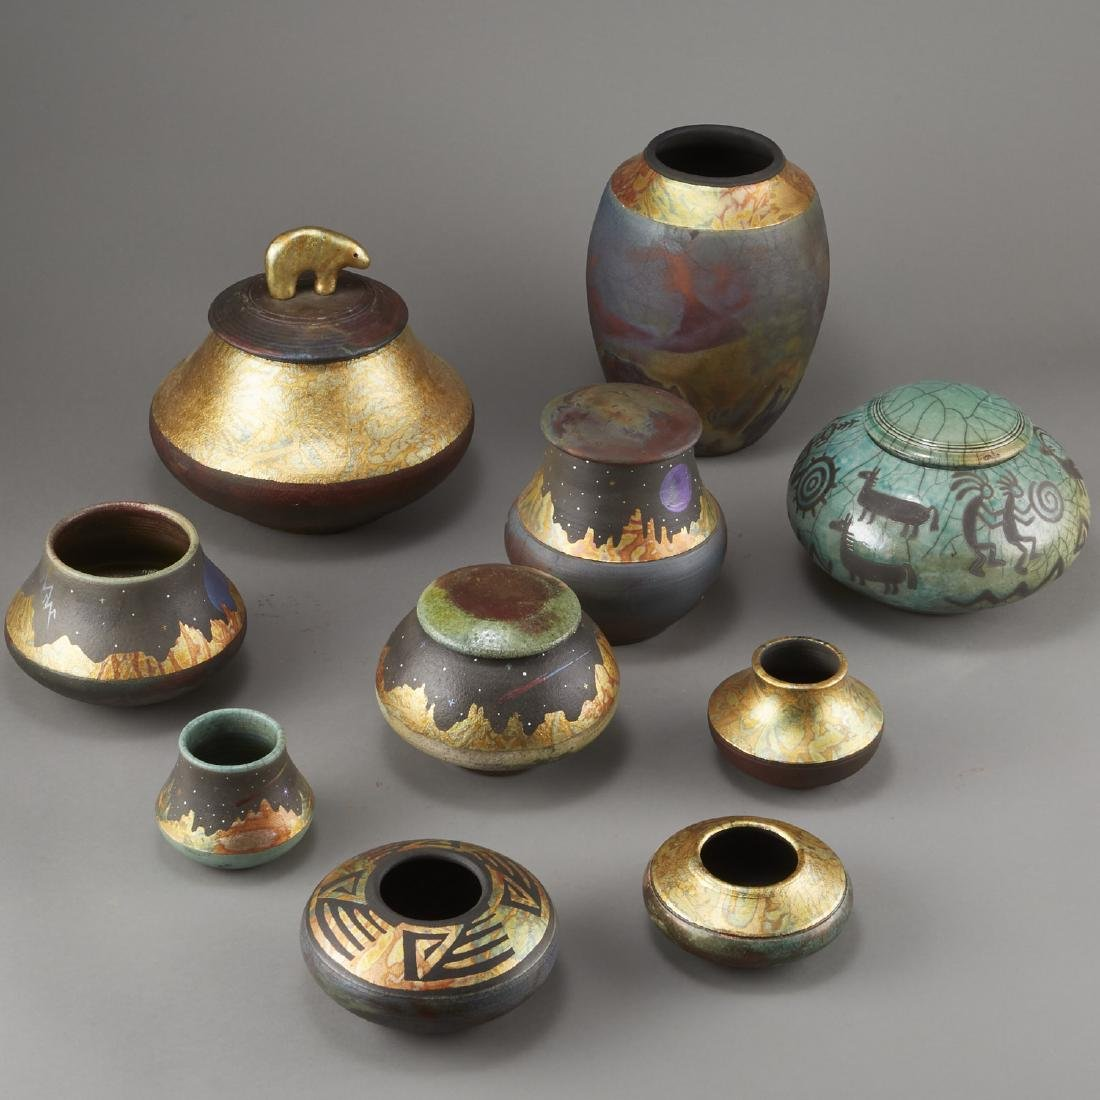 Group of 10 Rick Loewenkamp Raku Pottery - 3